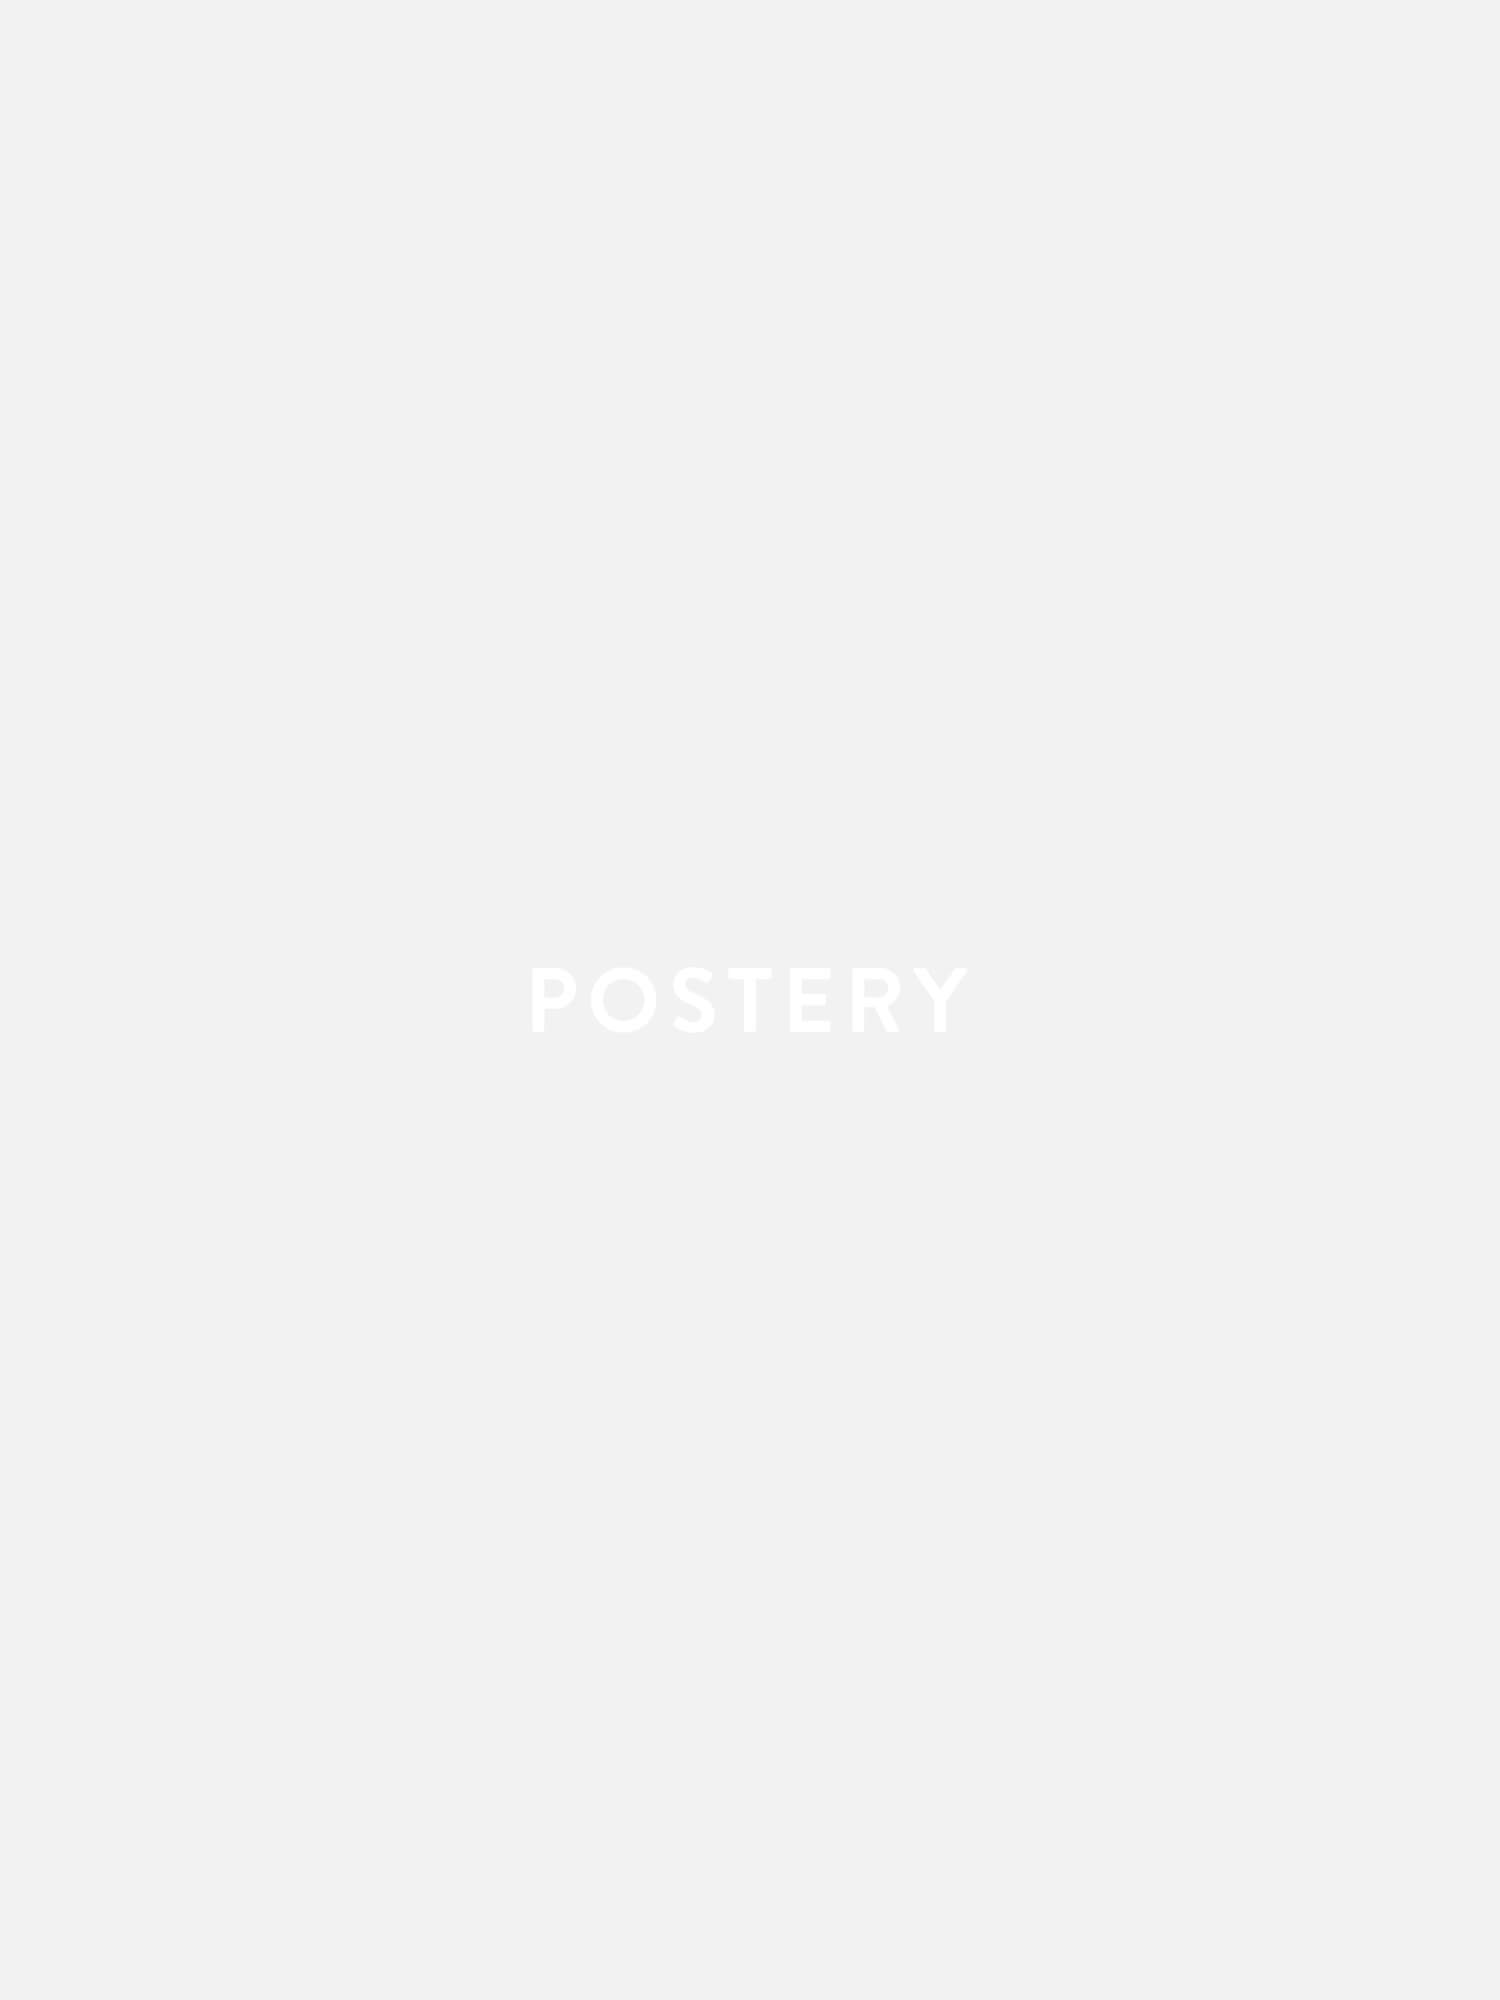 Fresh Figs Poster